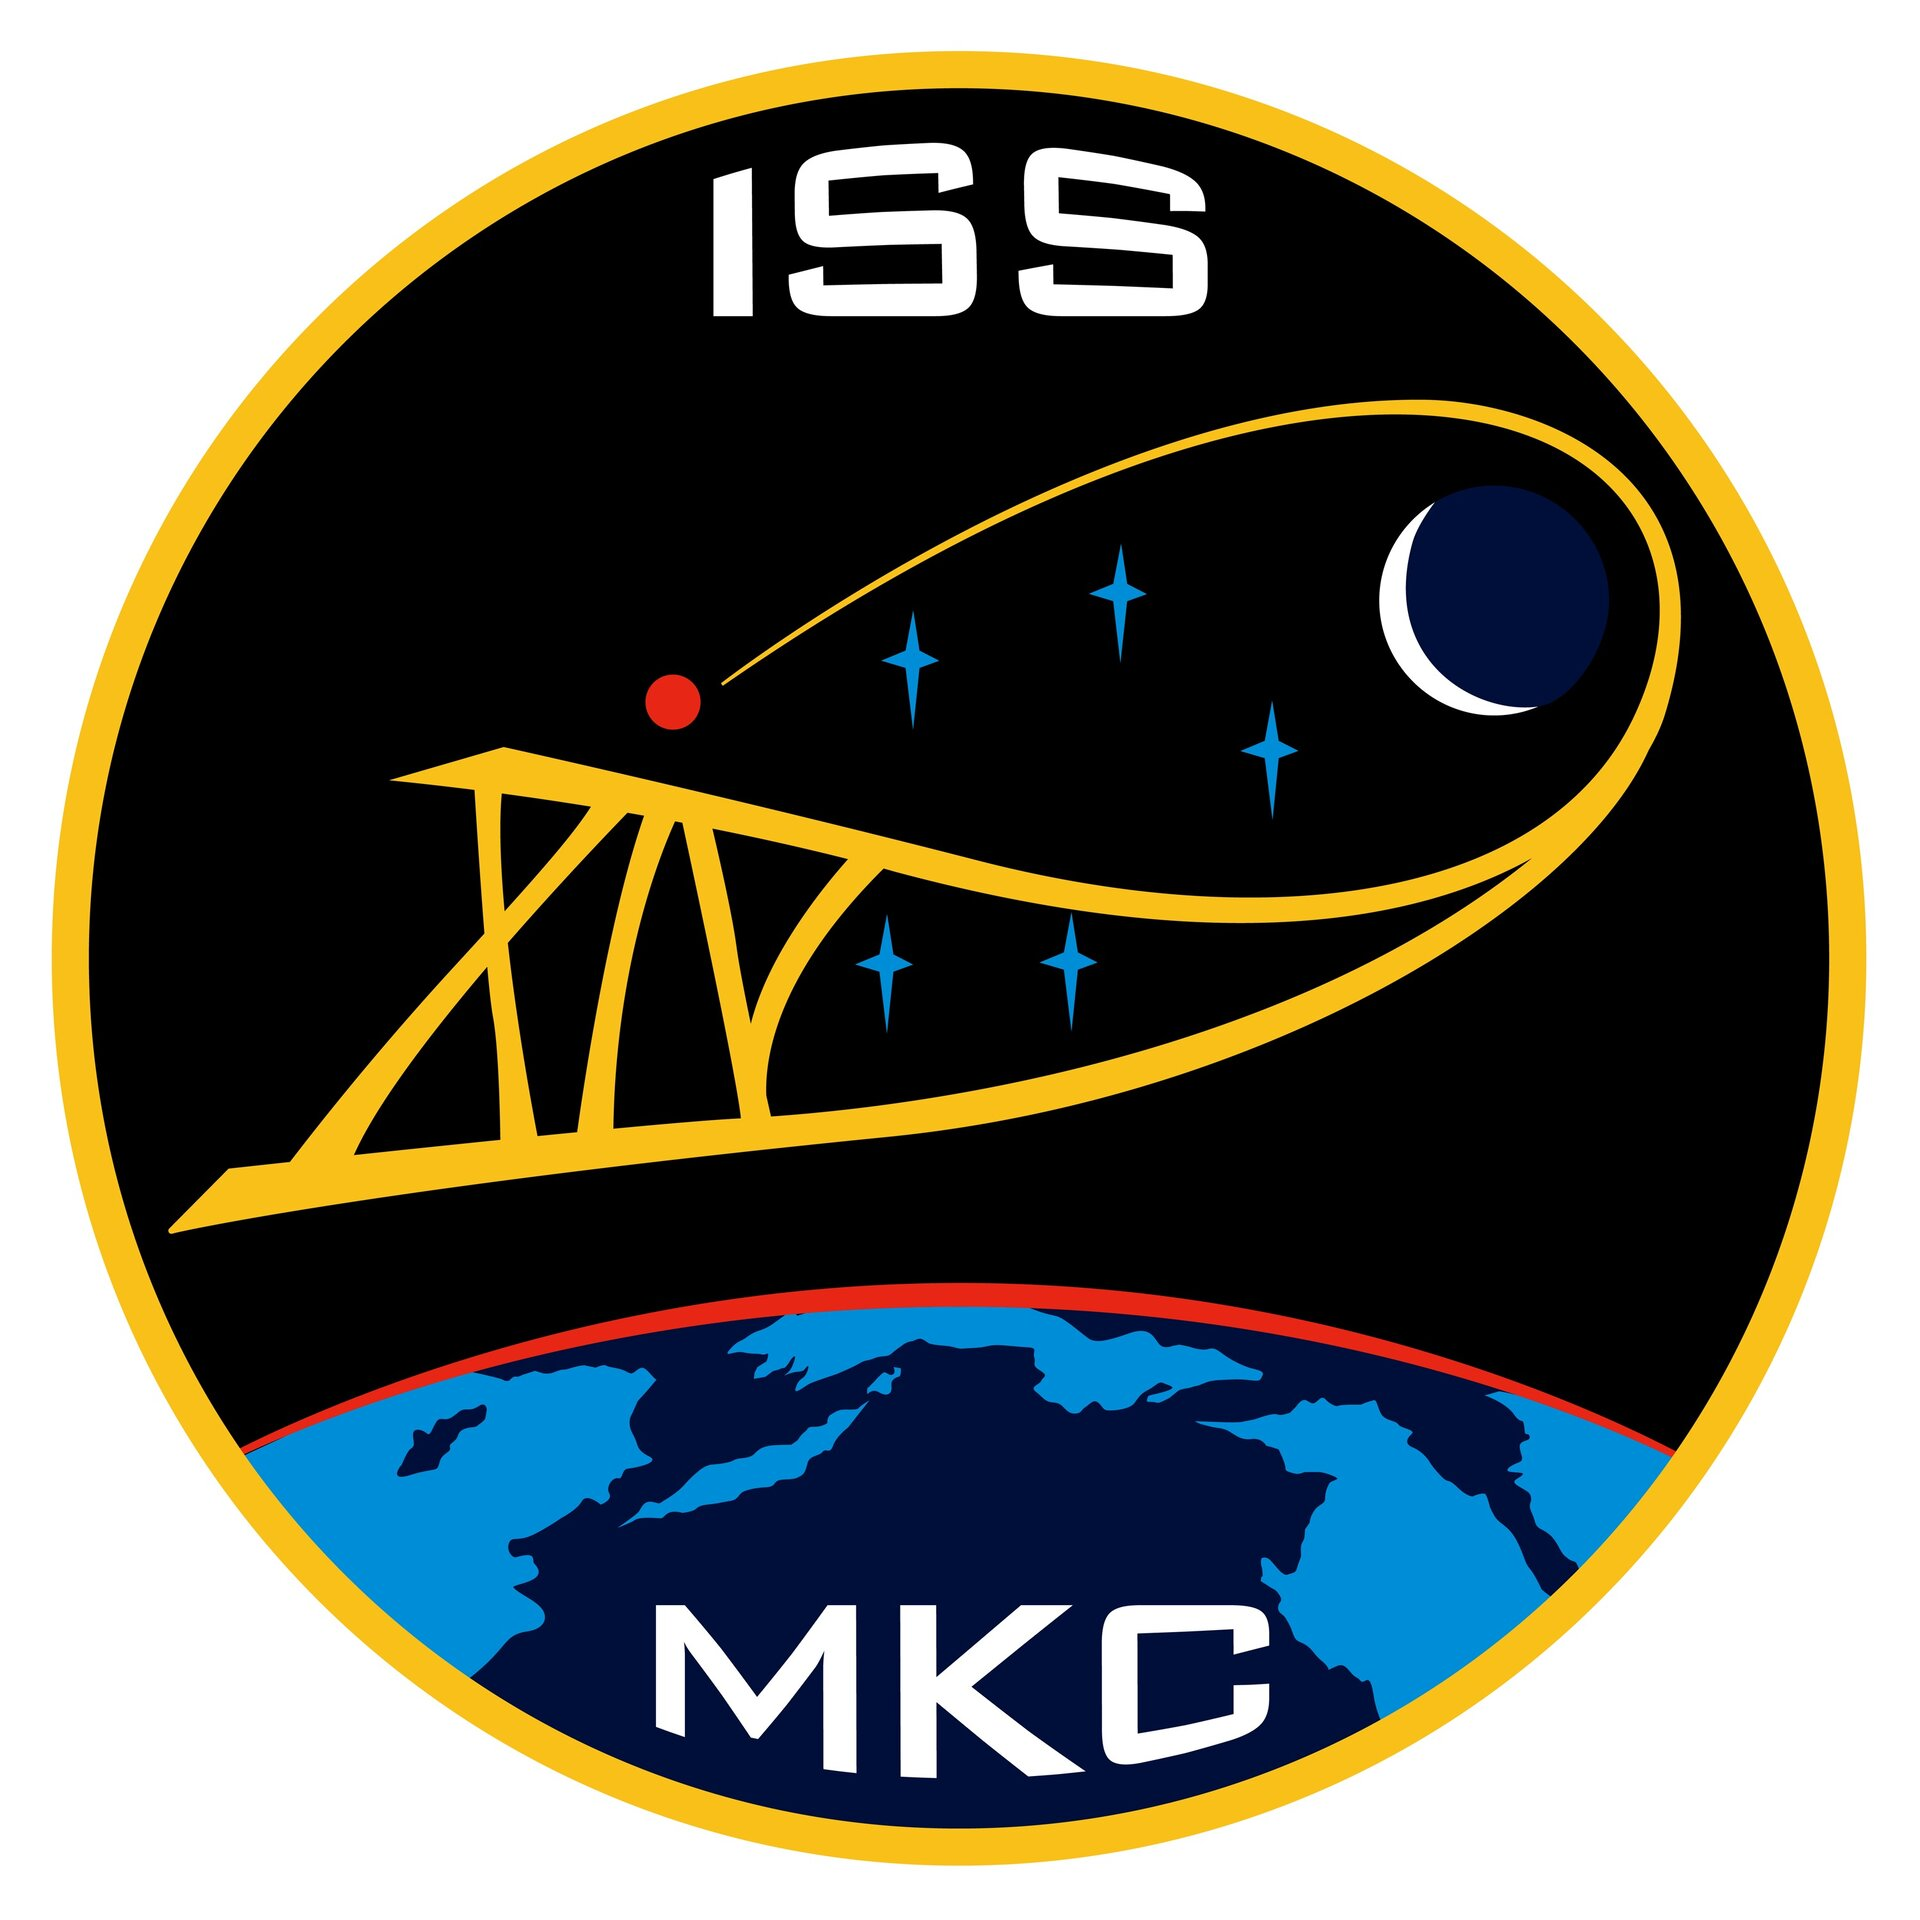 ISS Expedition 14 patch, 2006